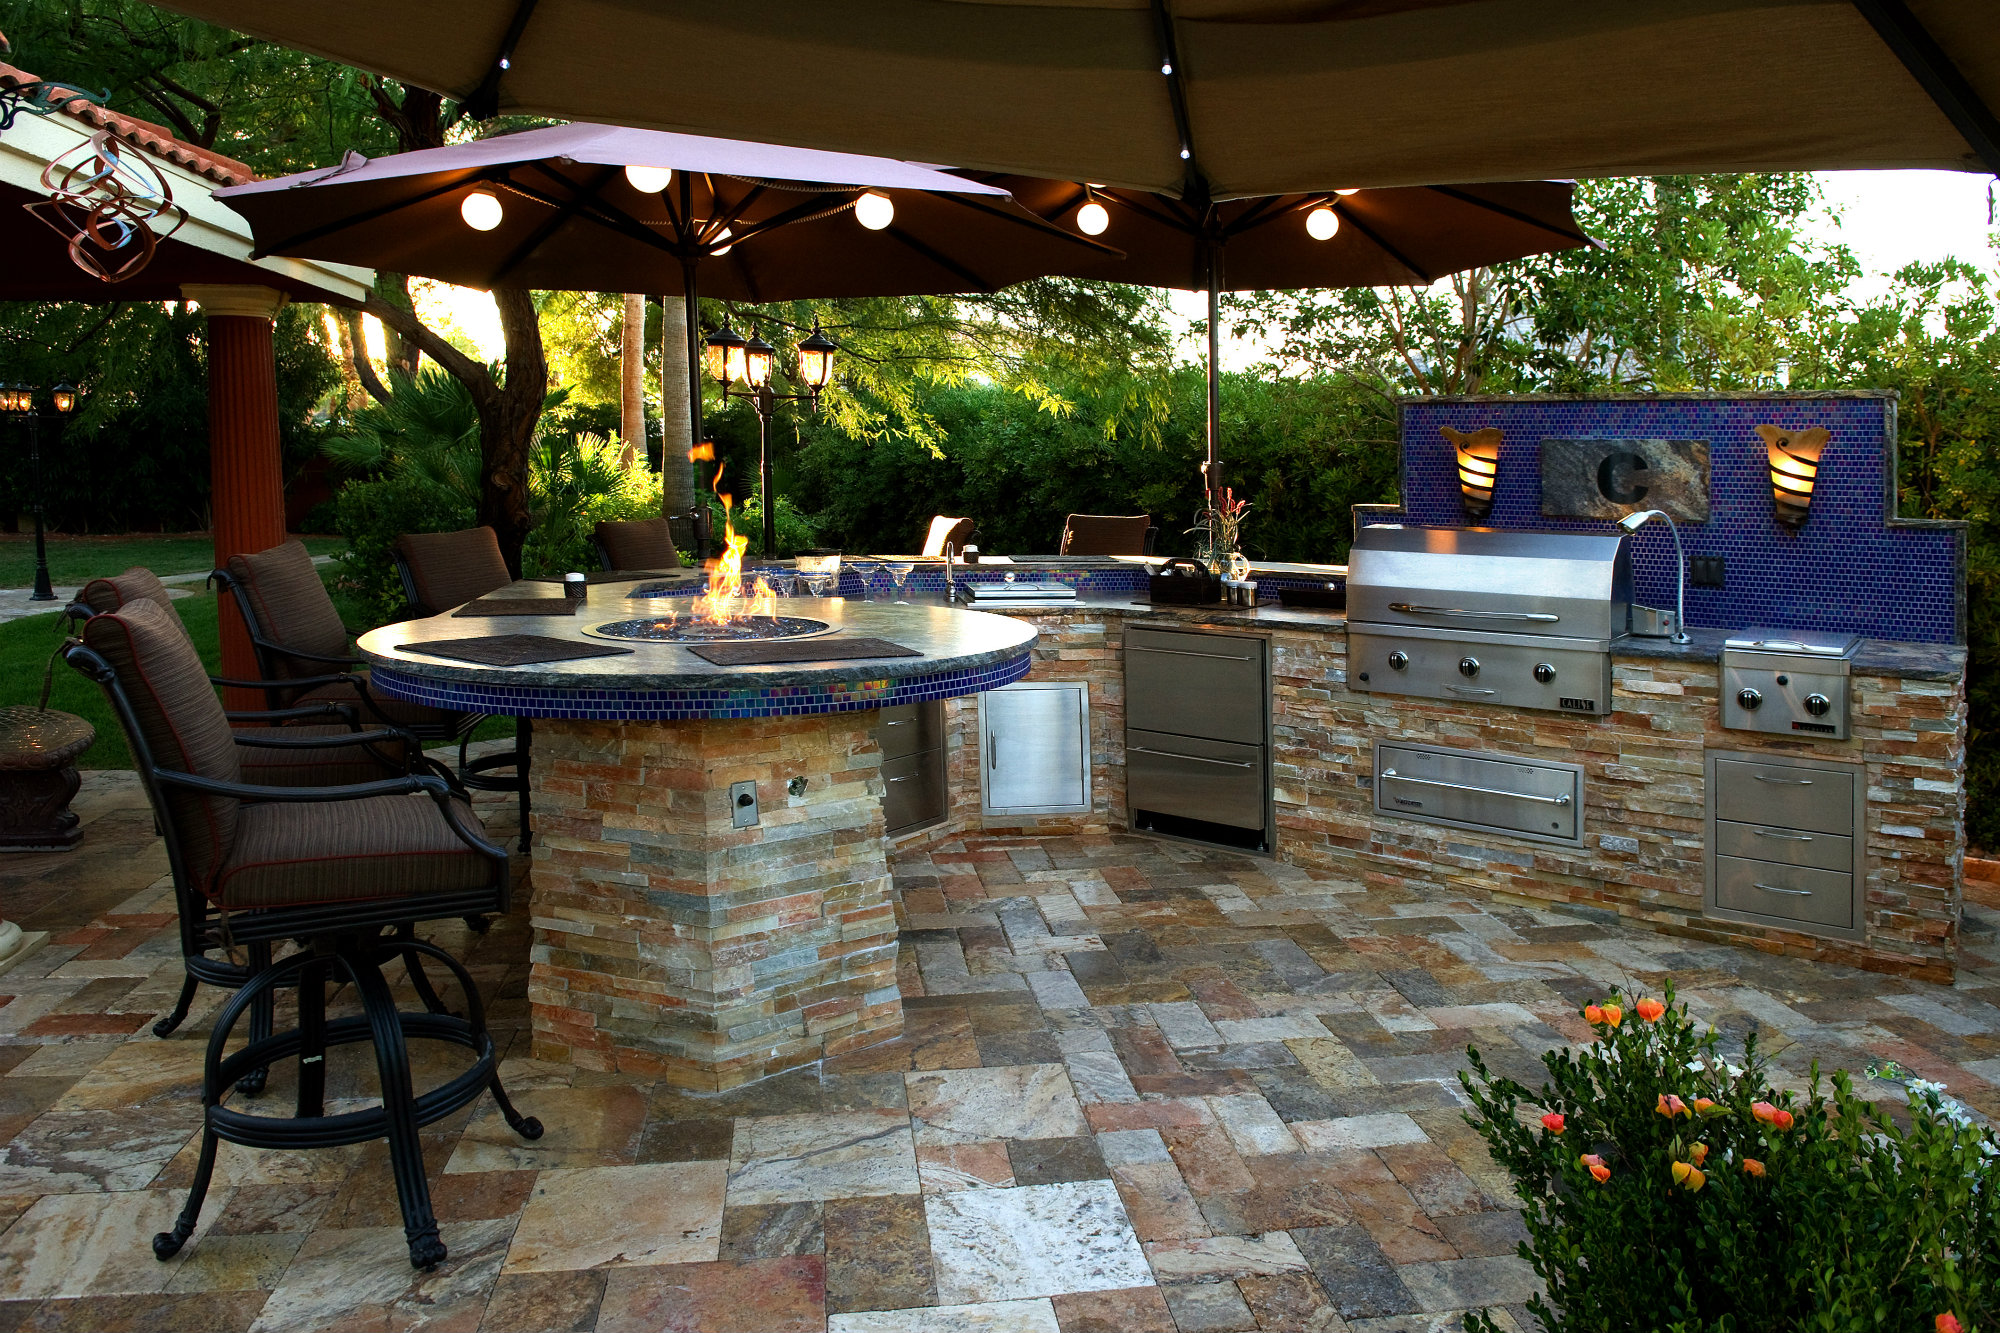 Backyard Living Trends | Pool & Spa News | Accessories ... on Outdoor Living Buildings id=27023